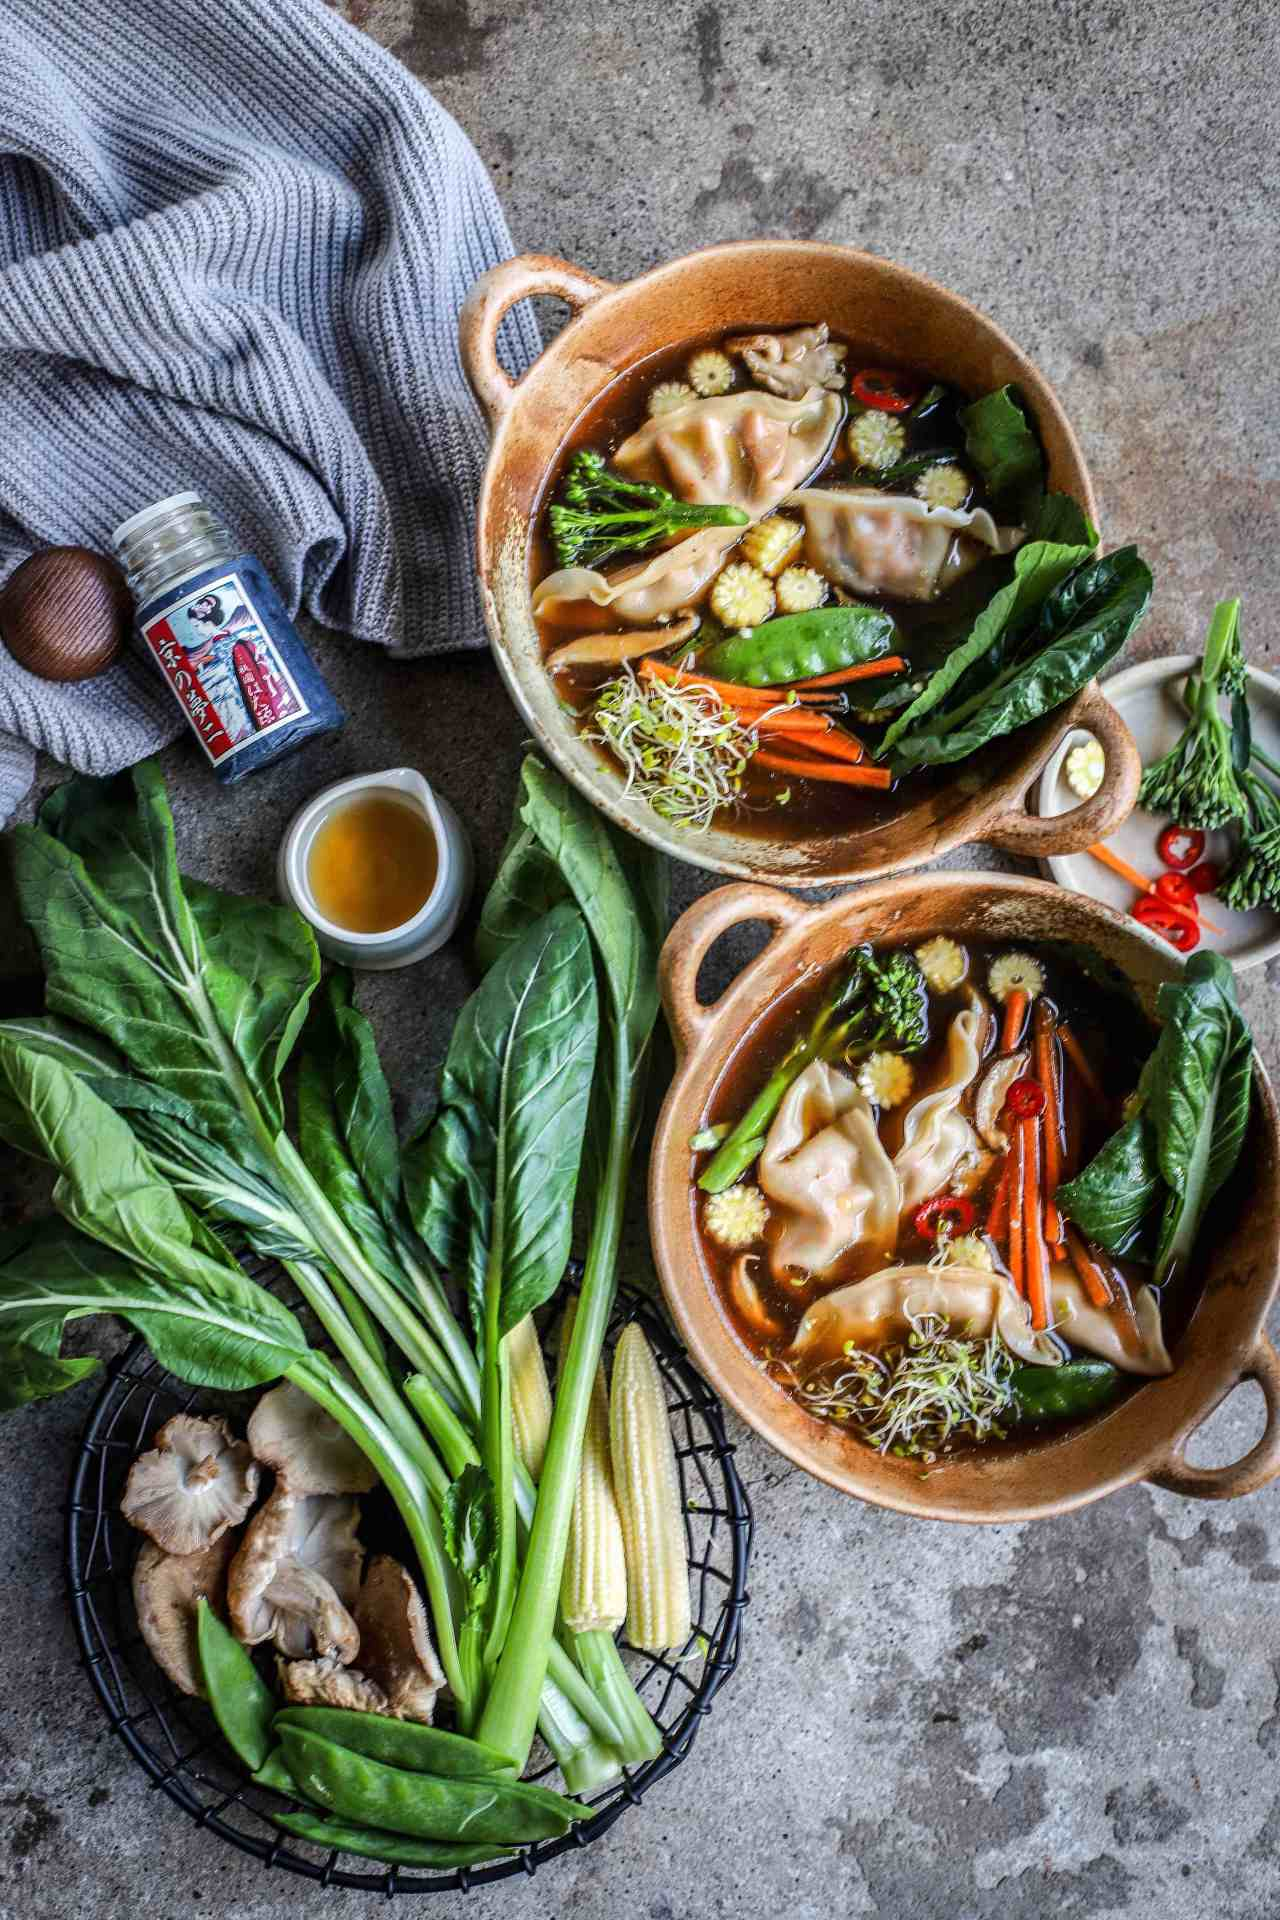 This Shiitake-Ginger Broth is light and deeply-nutritious, floating a whisper of thinly-cut vegetables and a few juicy gyozas. The perfect antidote to heavy winter food. Sip this wholesome, healing Japanese-inspired soup piping hot for best cold-blasting effect. #soup #vegan #shiitake #japanesefood #ginger #broth #healthyrecipe #nutrition